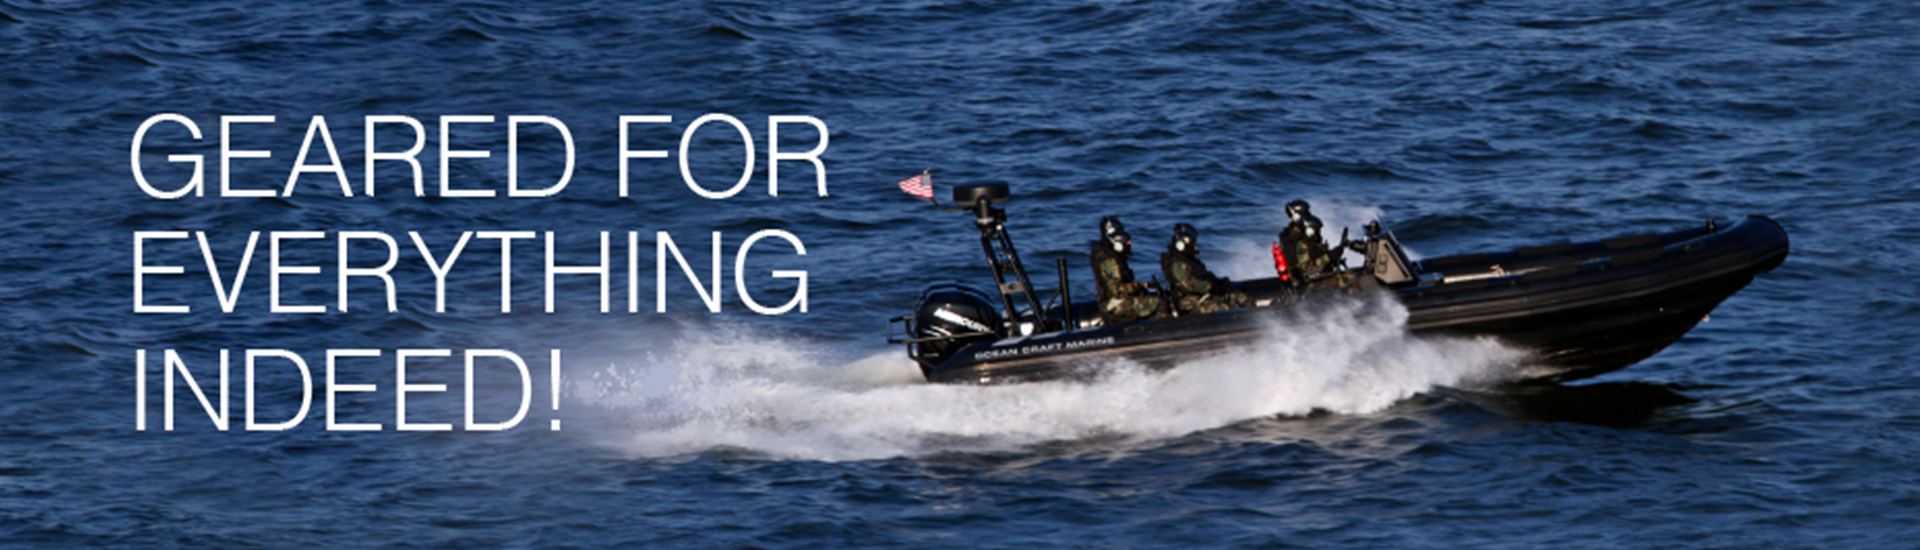 Gear up with OCM Military and Professional Boats